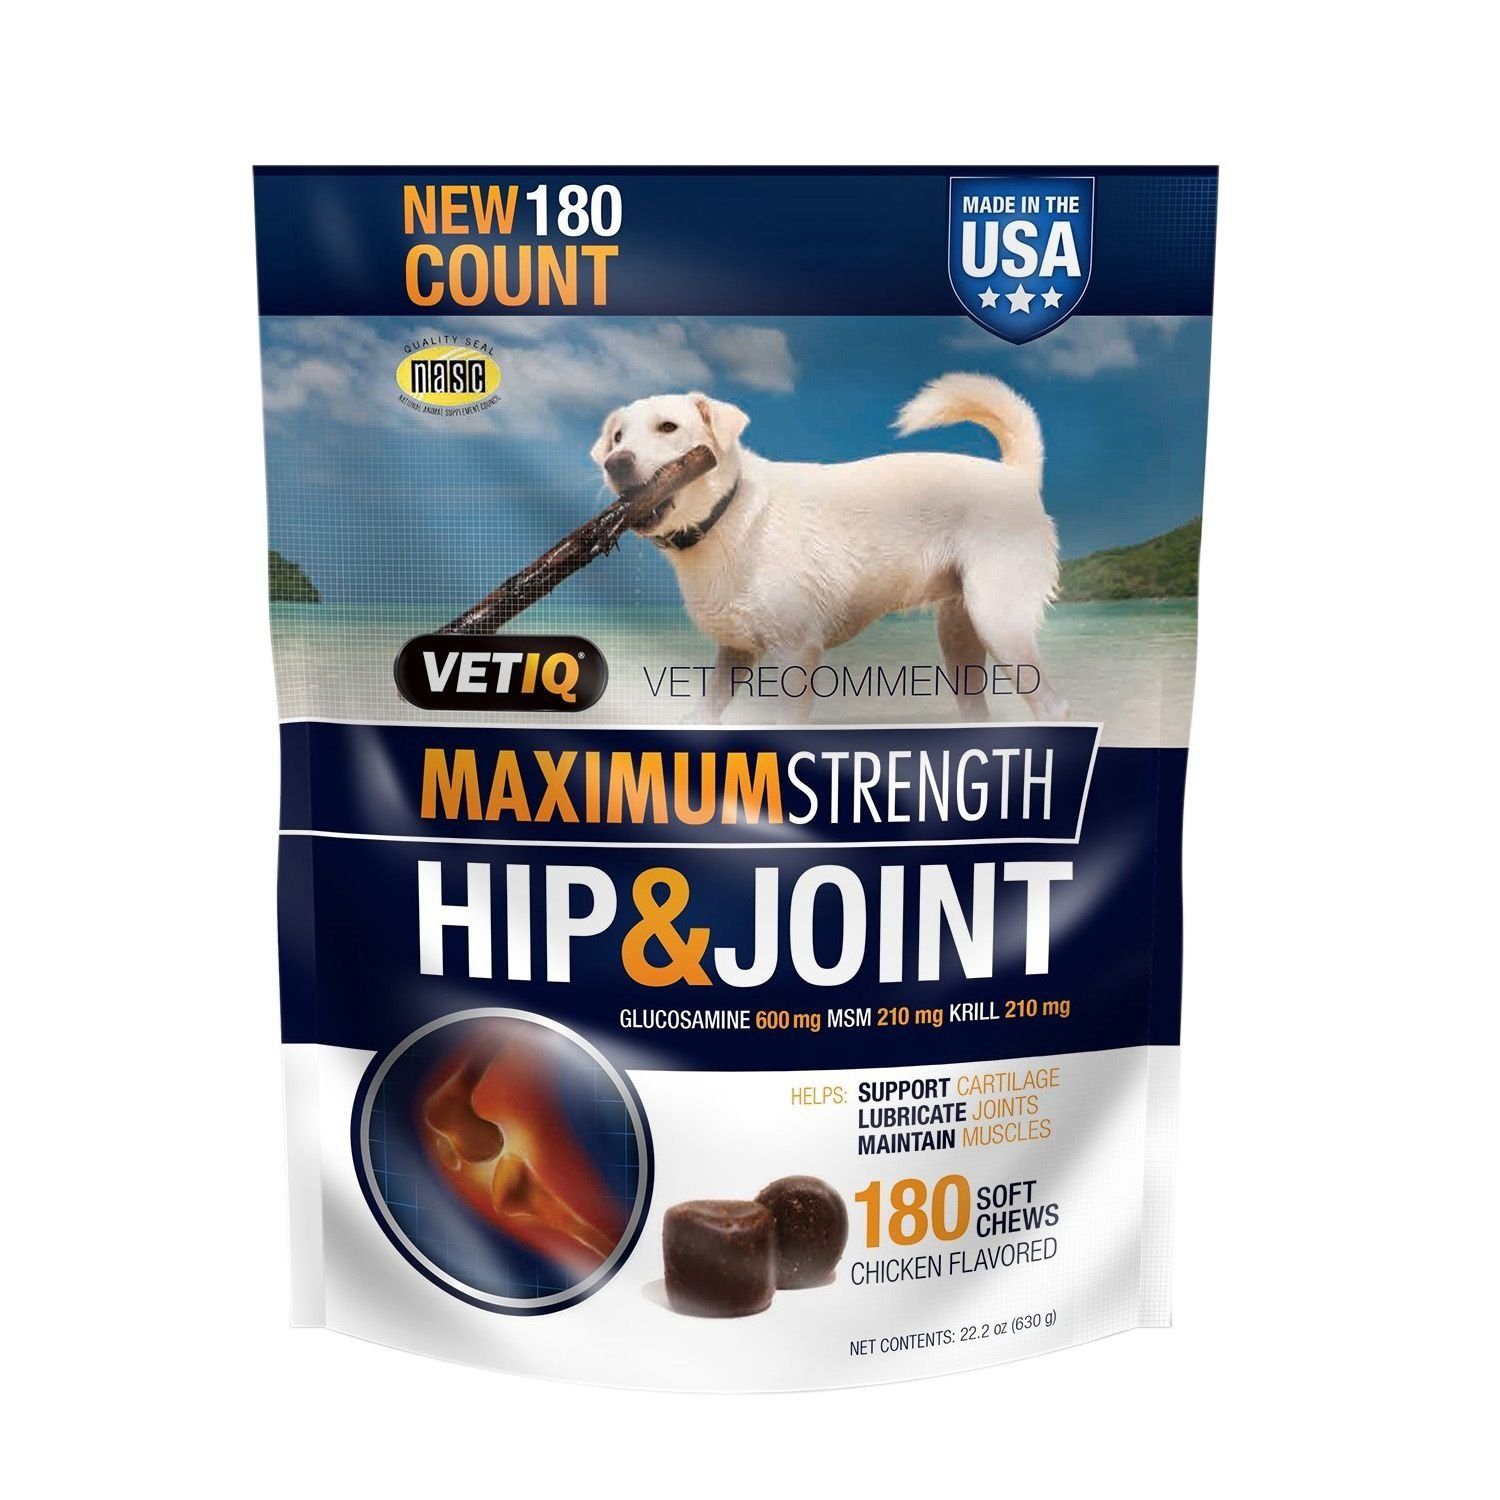 VetIQ Hip & Joint Chews for Dogs, 180 ct. (pack of 6)